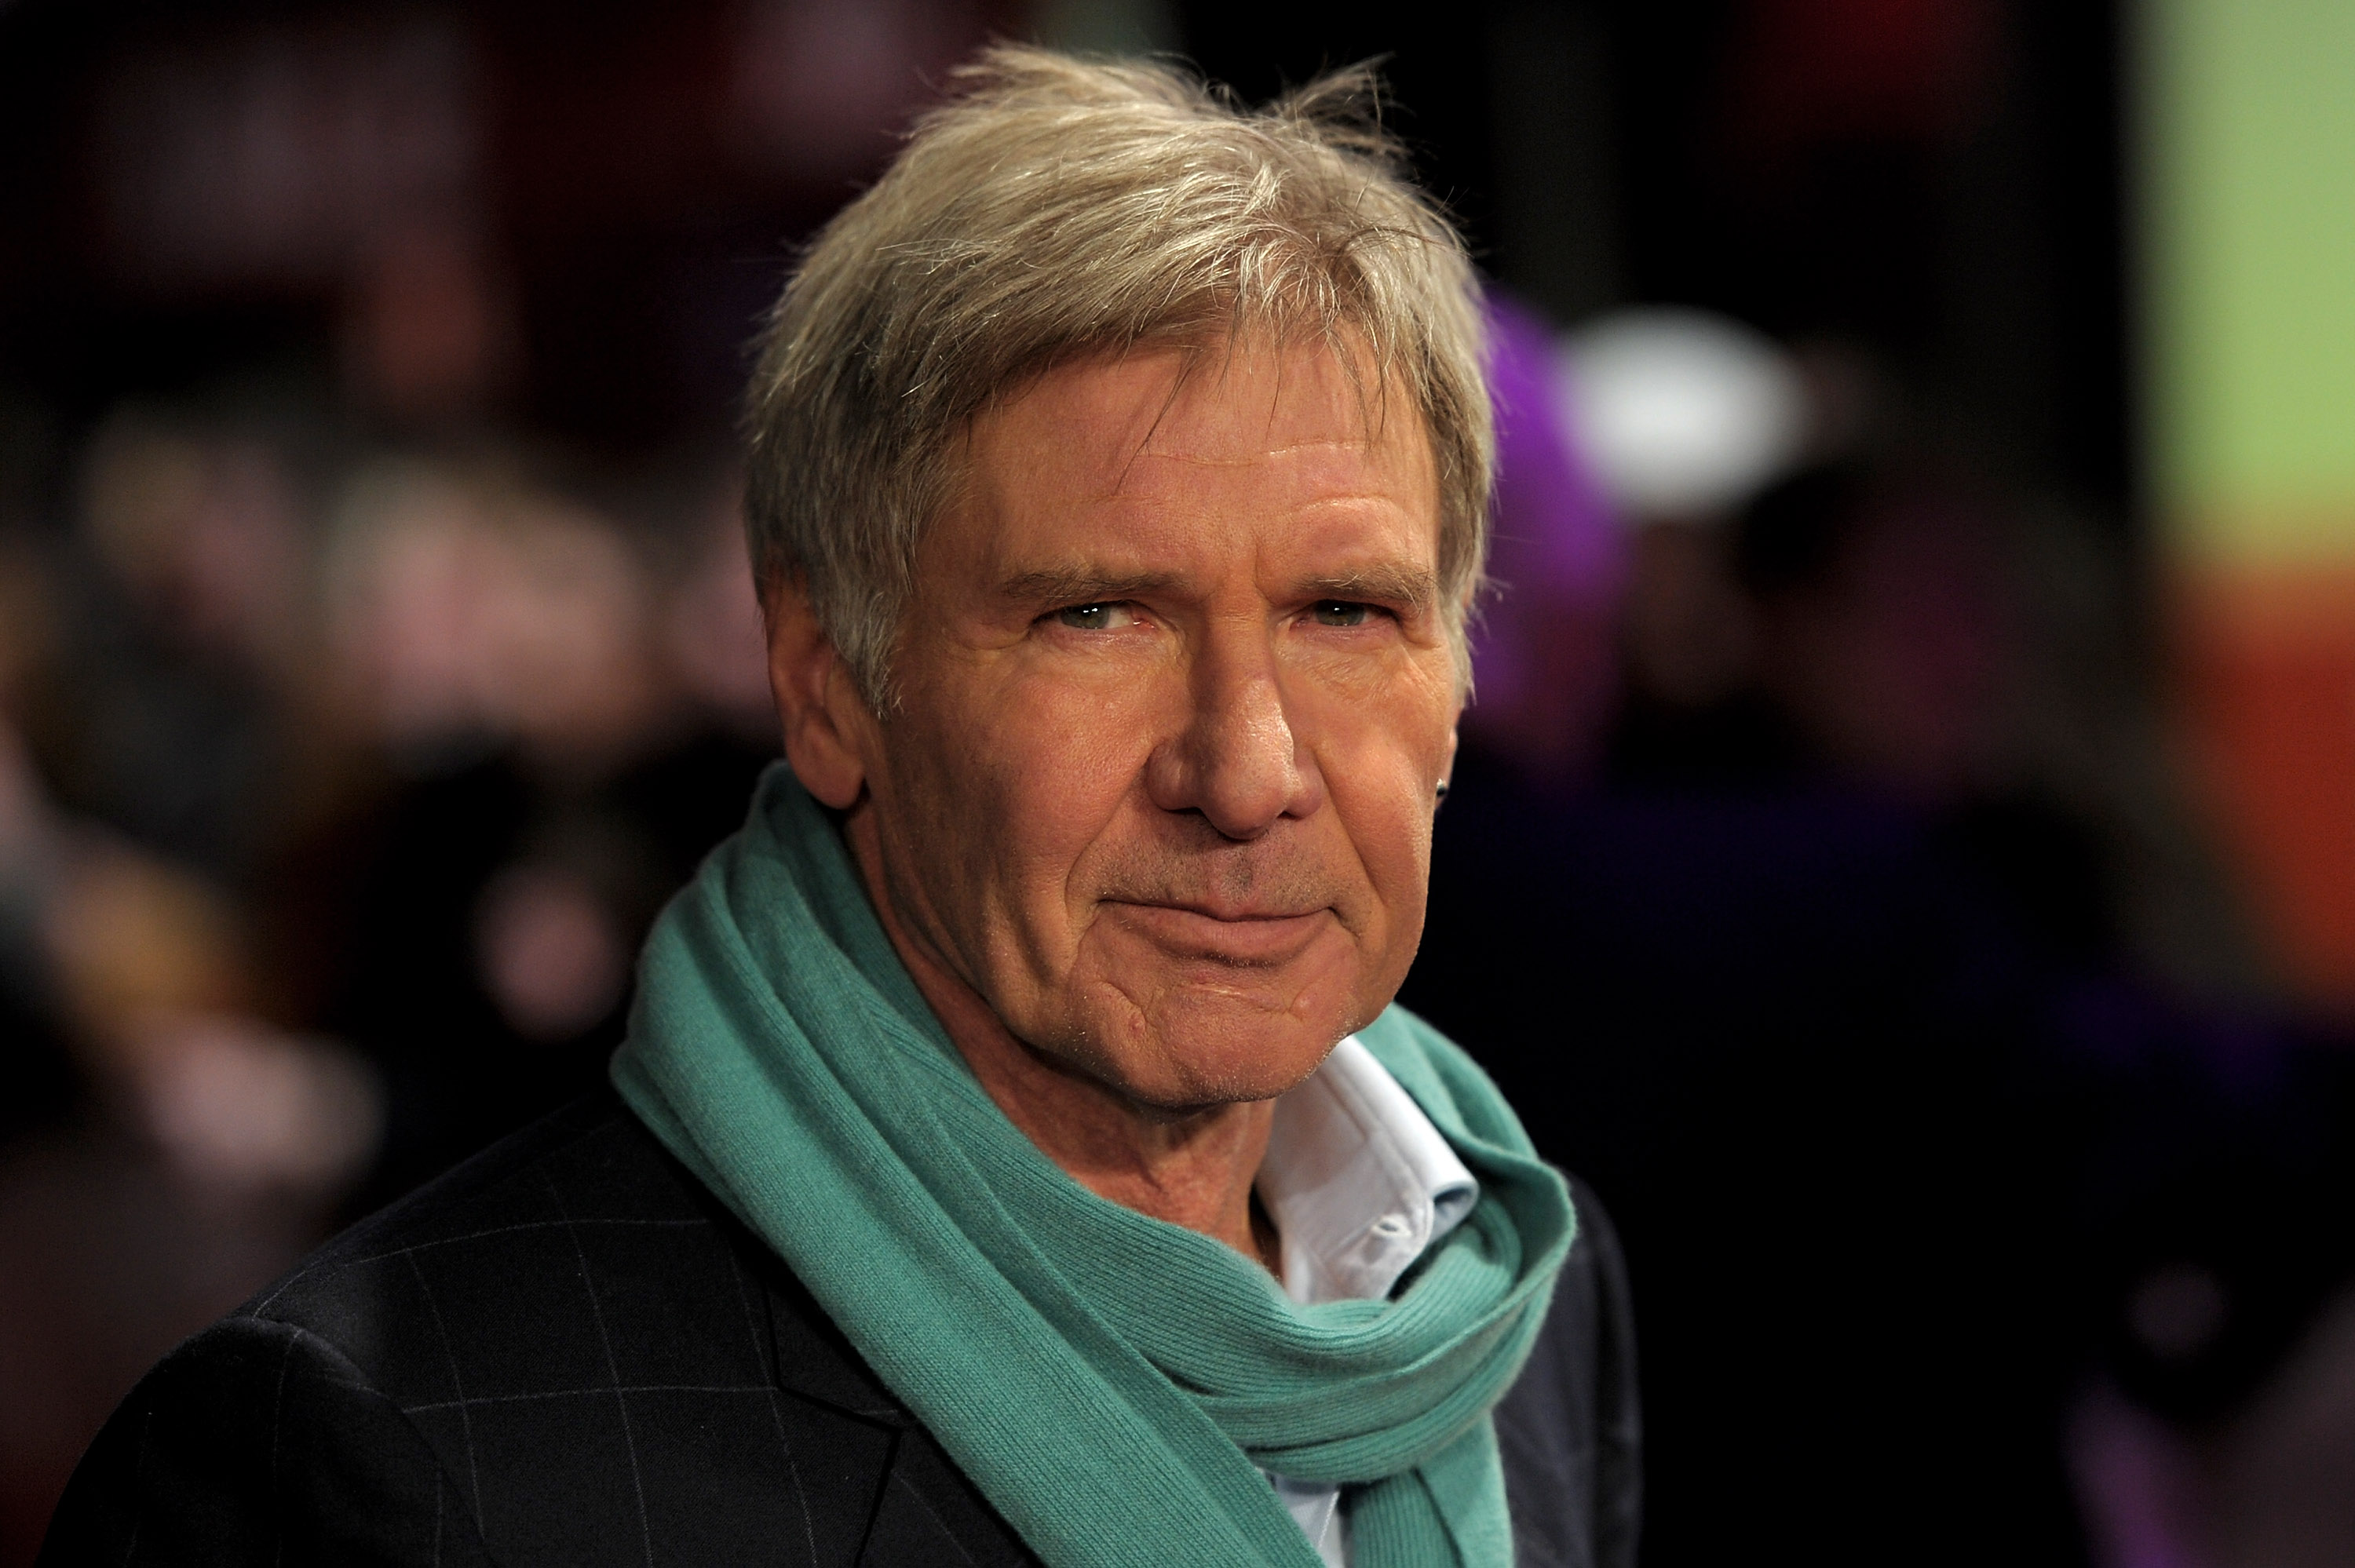 Oh noooooo, Harrison Ford was just involved in *another* plane incident